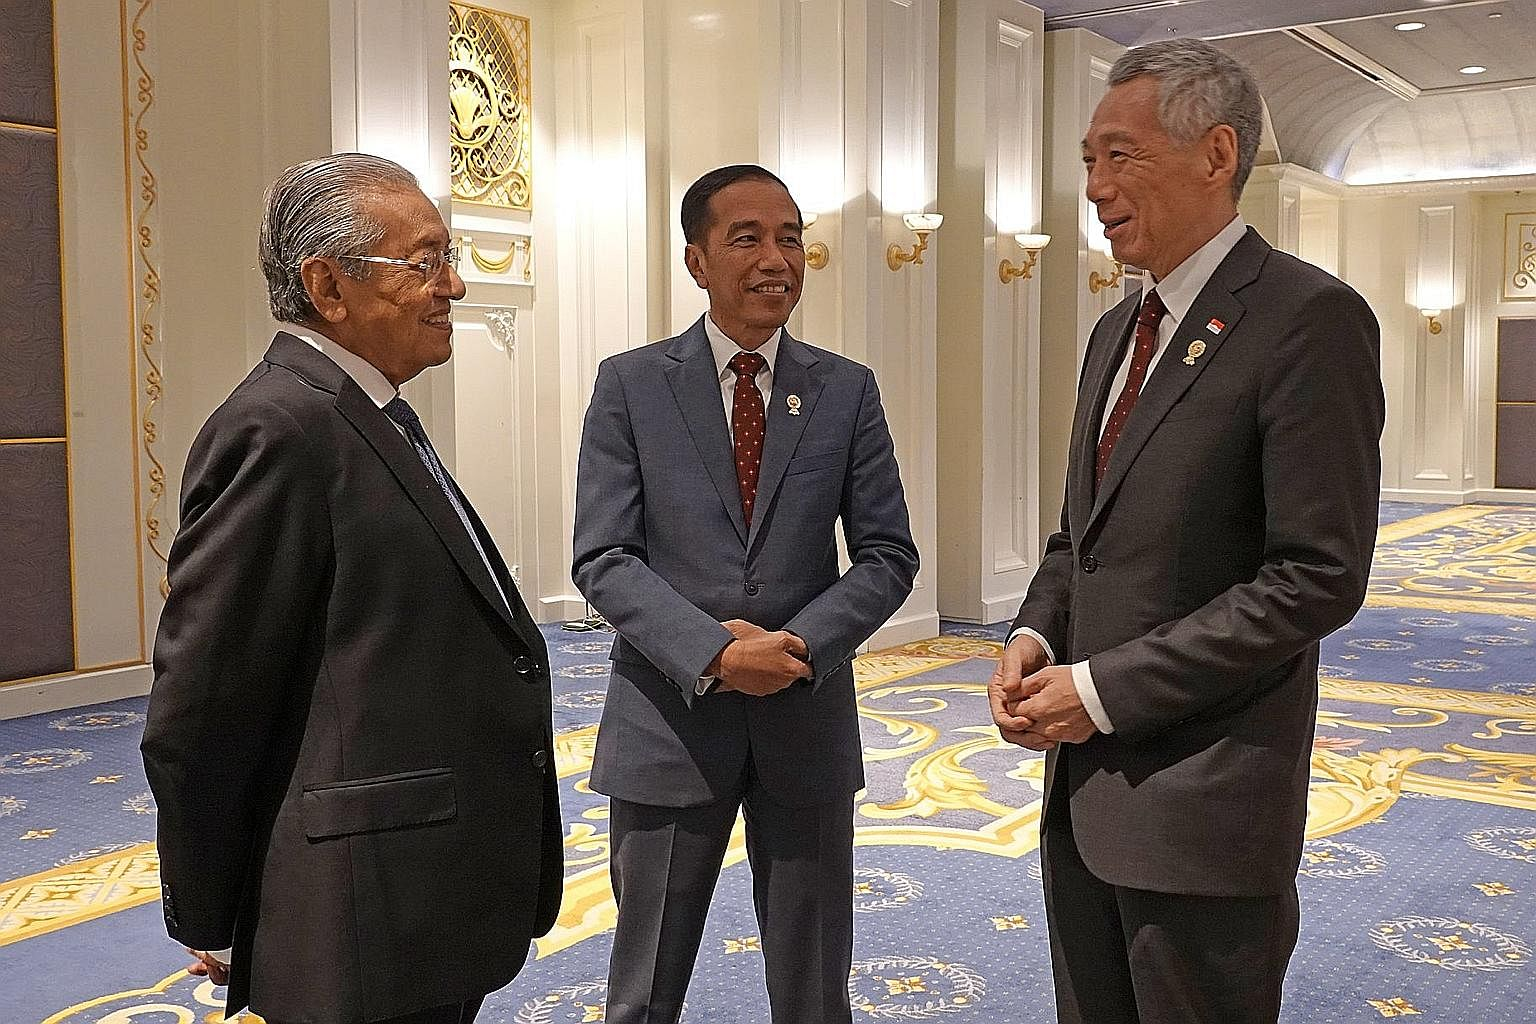 President Joko Widodo with Prime Minister Lee Hsien Loong and Malaysian Prime Minister Mahathir Mohamad in Bangkok last month. ST editors hailed Mr Joko's role in putting Indonesia at the heart of Asean in recent times.